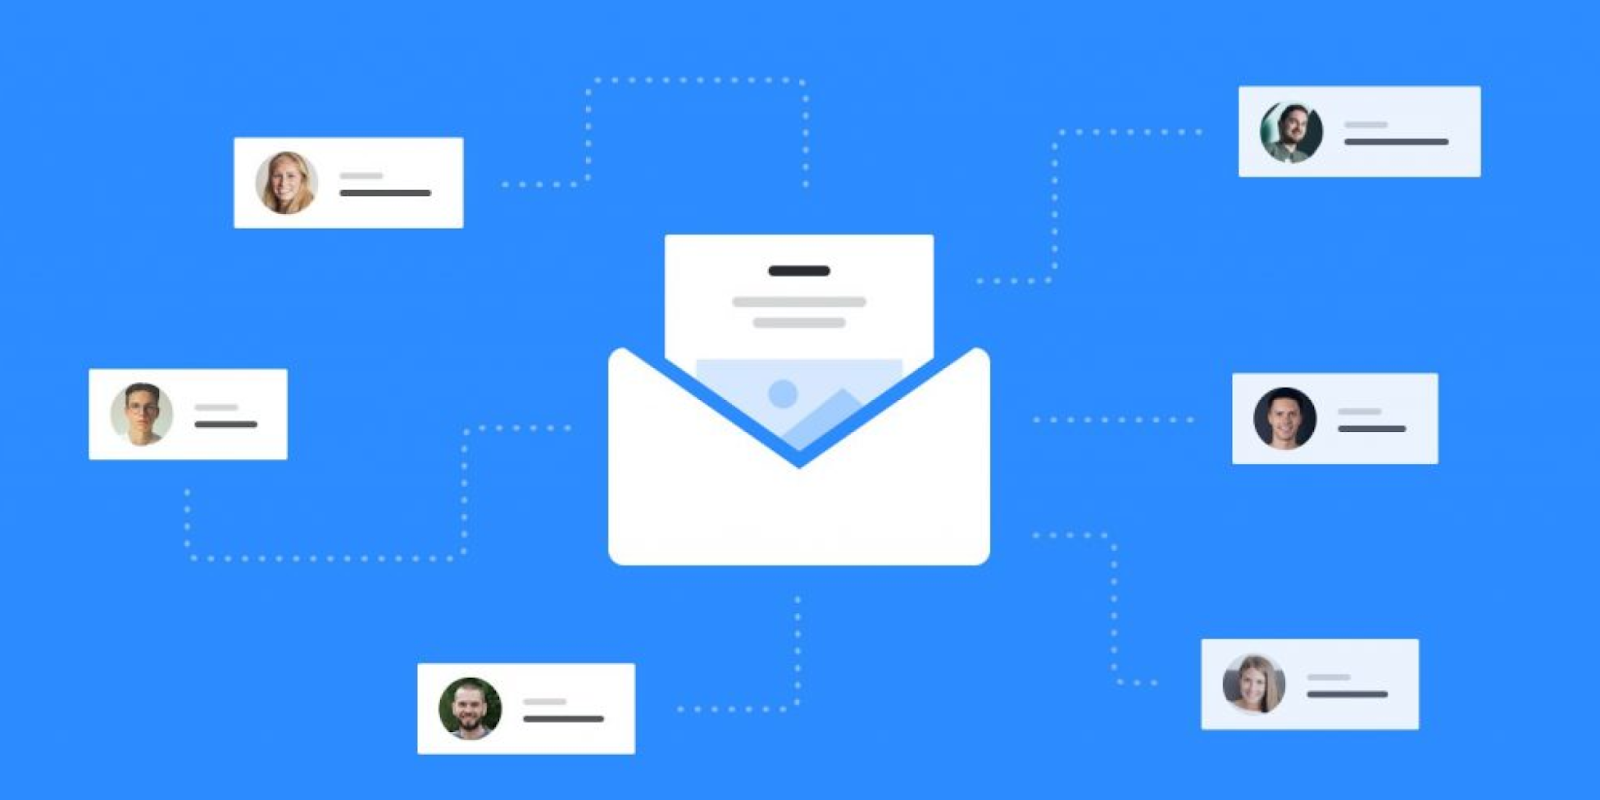 Blue email envelope image indicating how email lists are grown